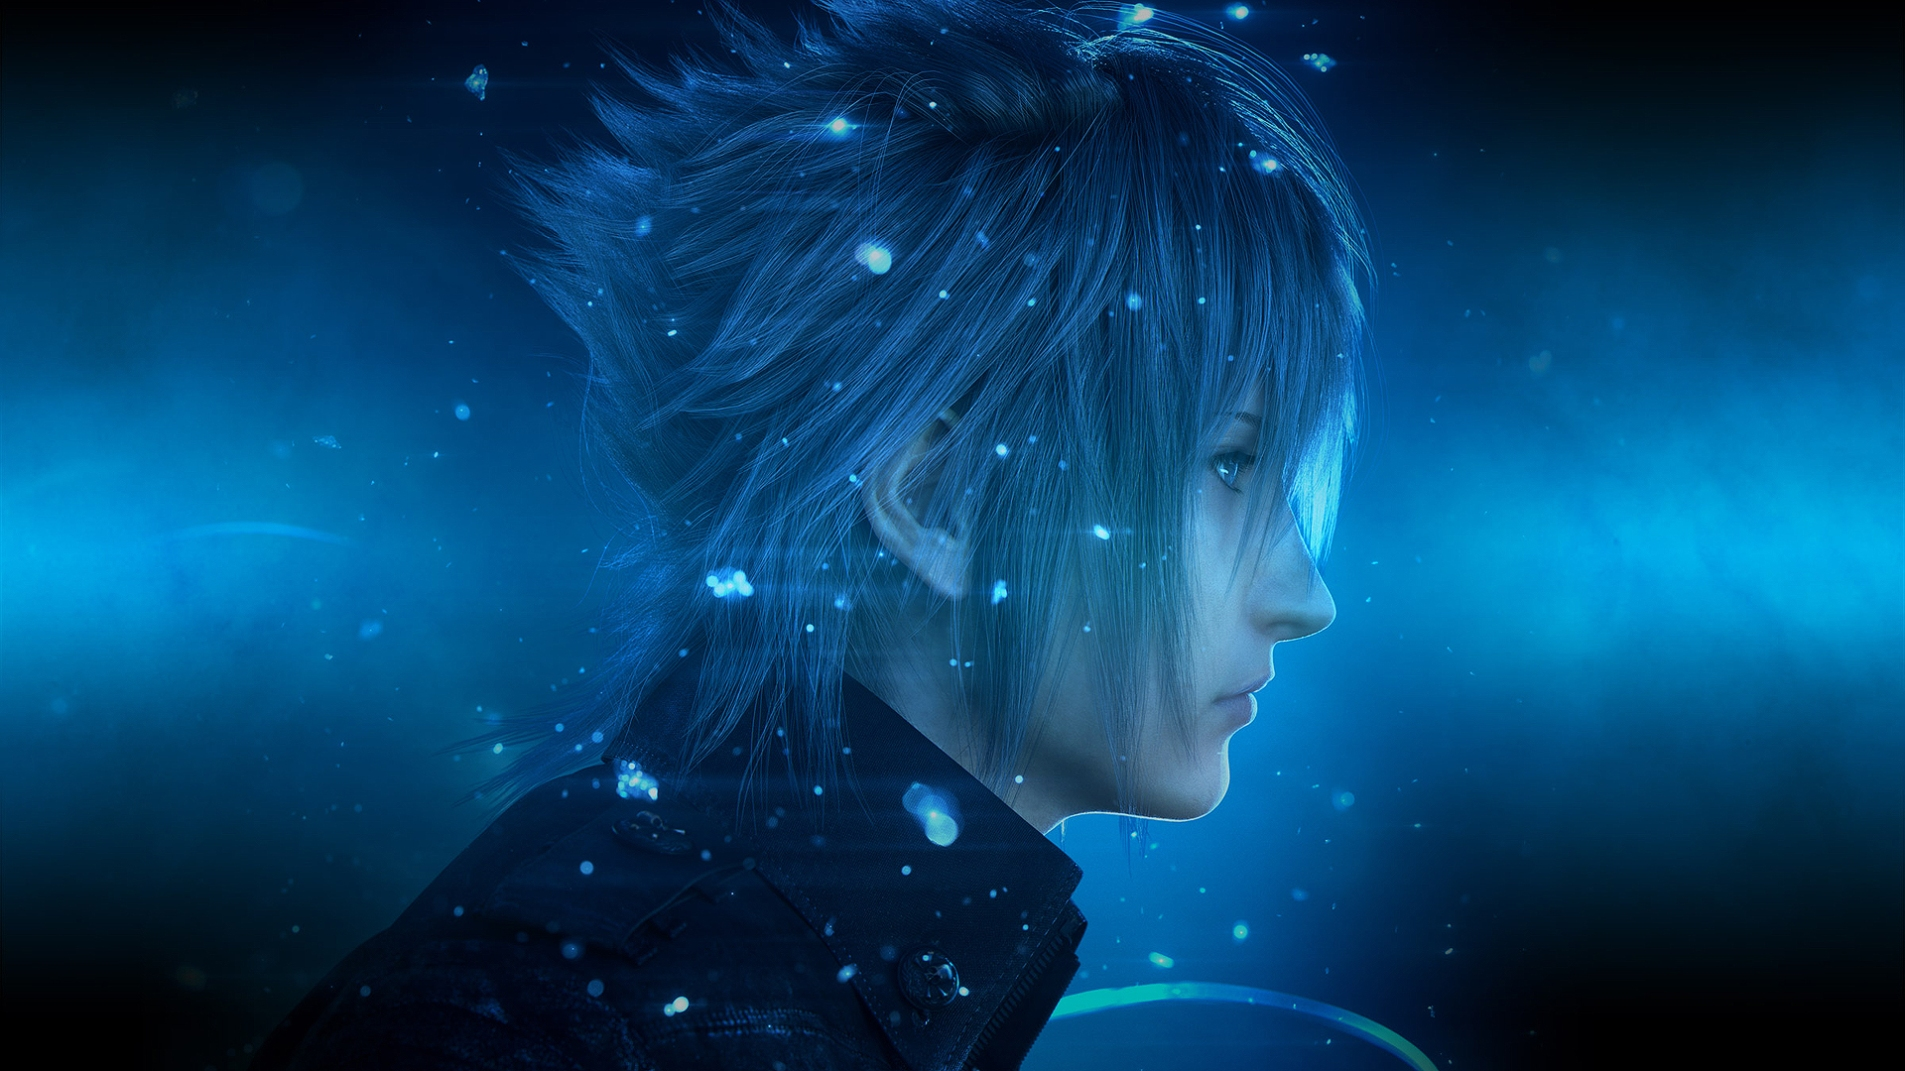 finalfantasyhxwallpaper